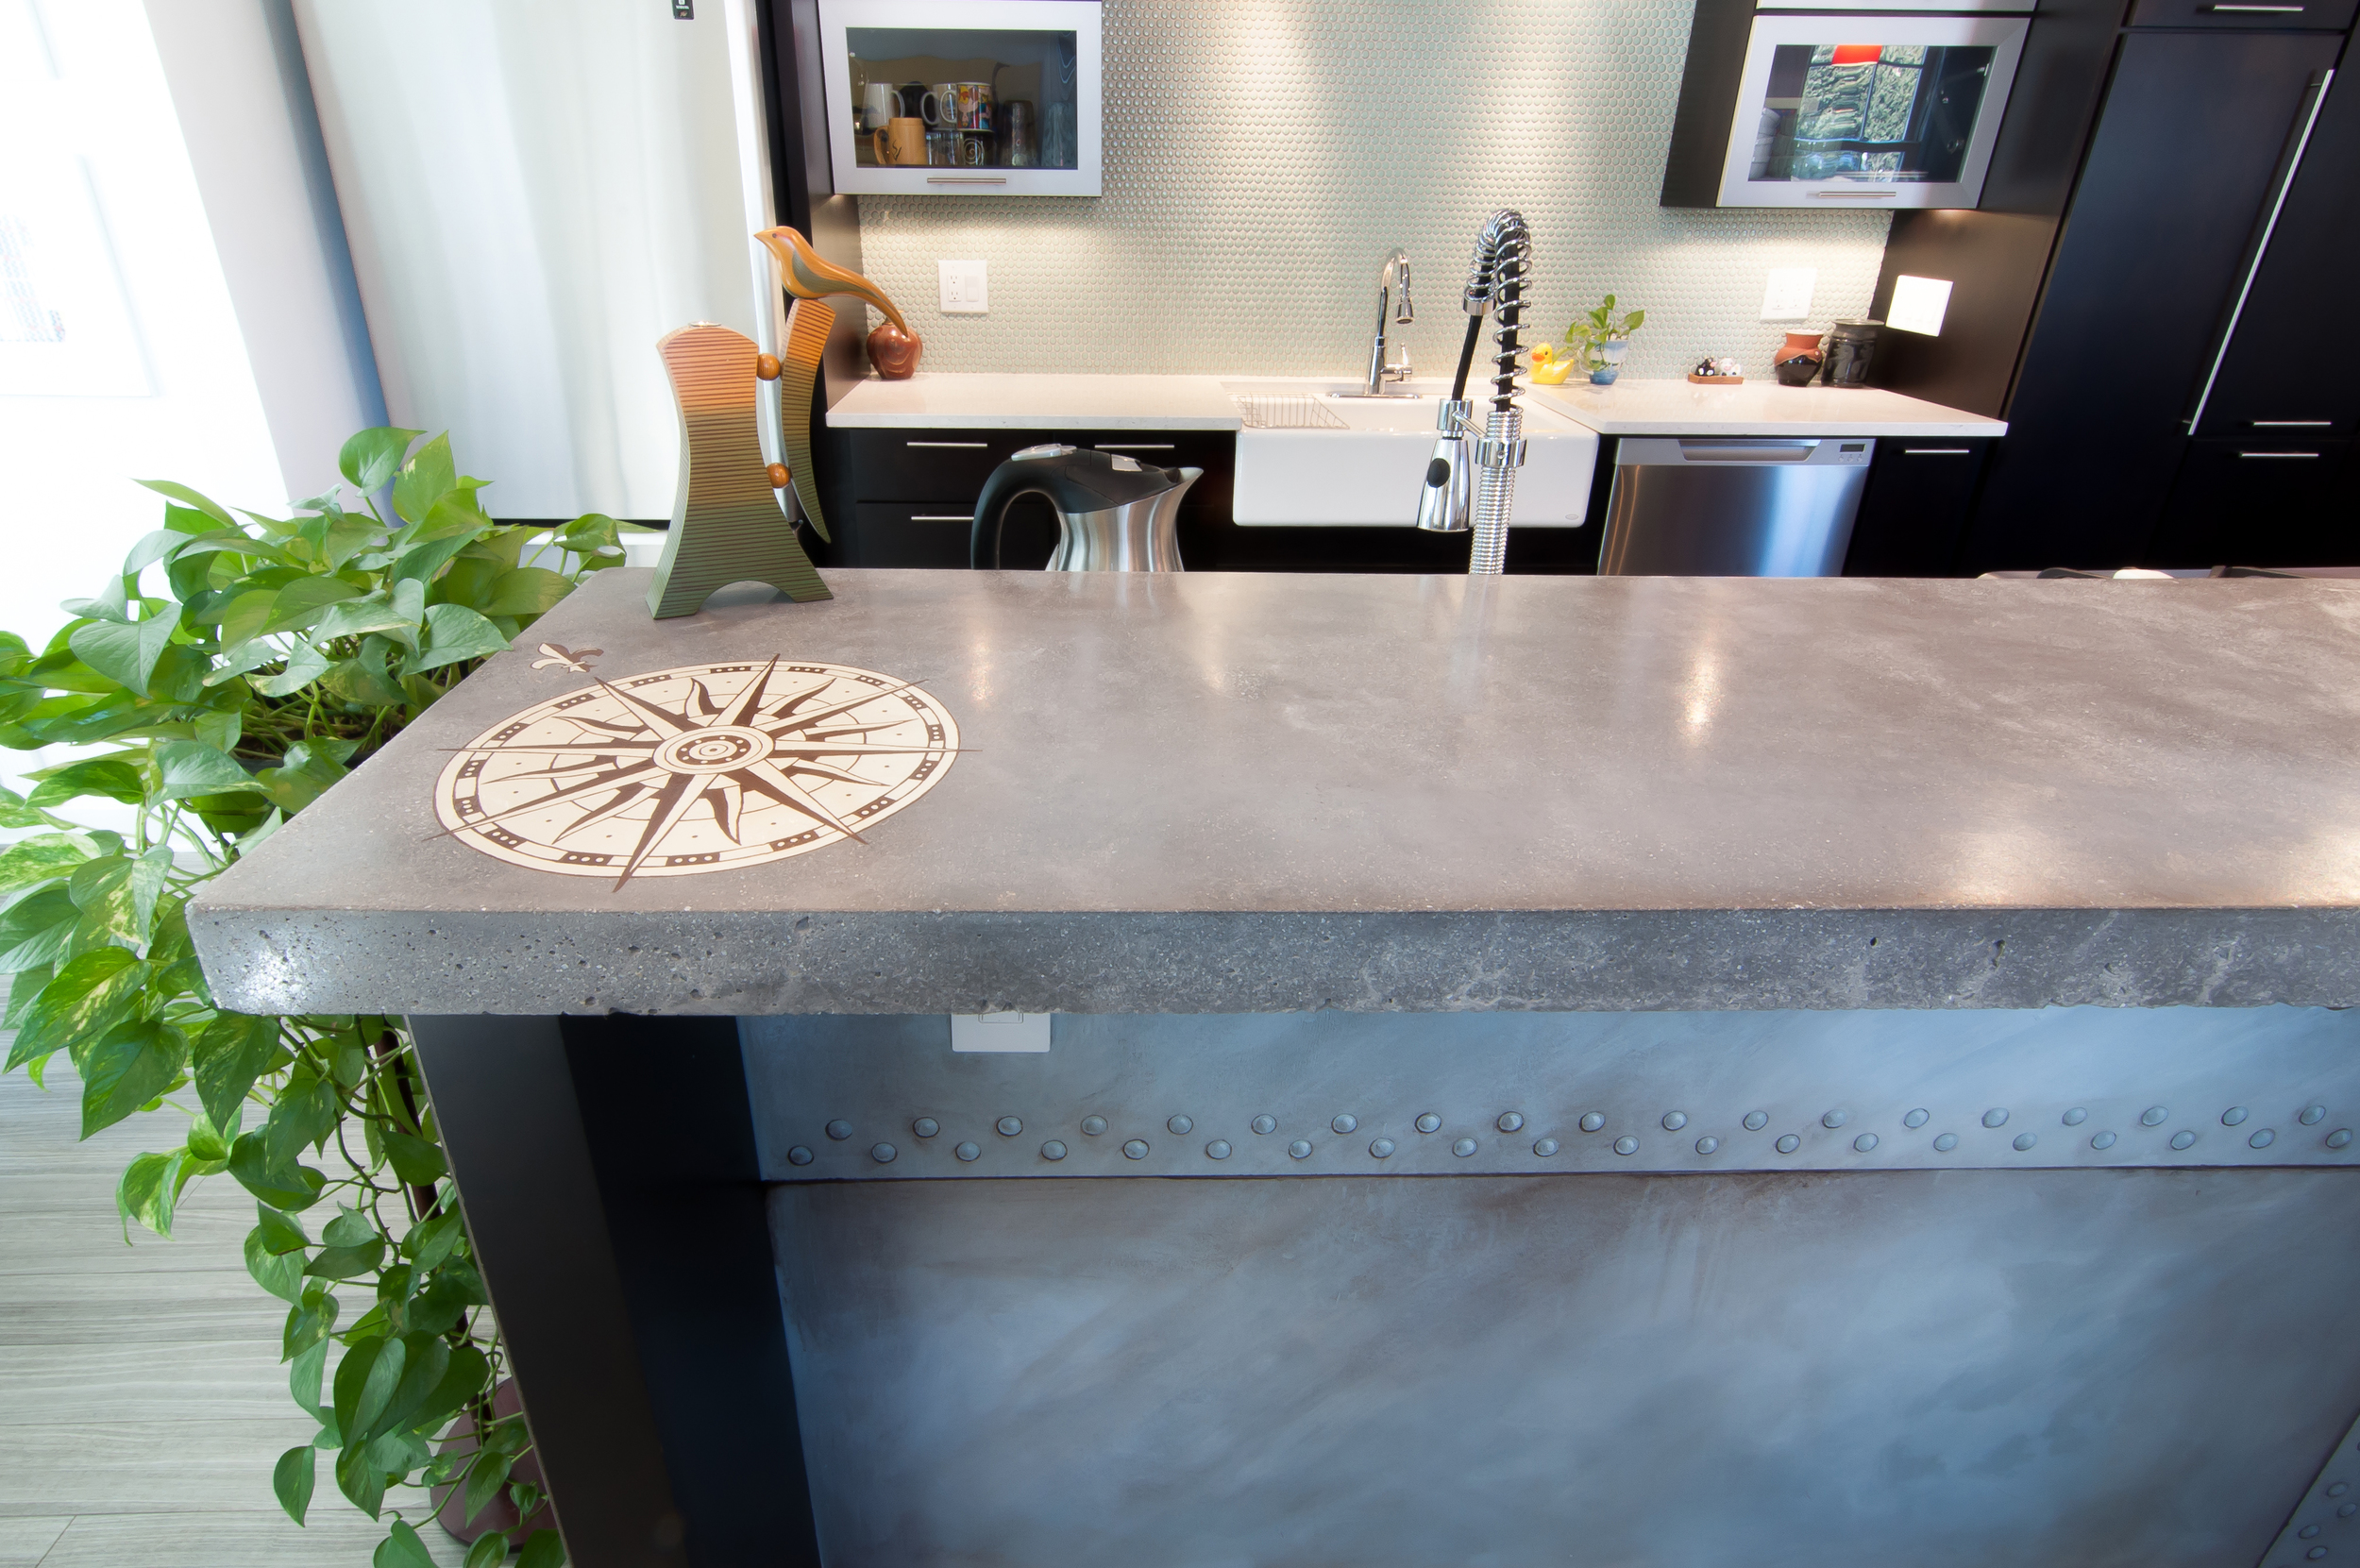 More faux finishing work under the bar counter and on the concrete countertop.